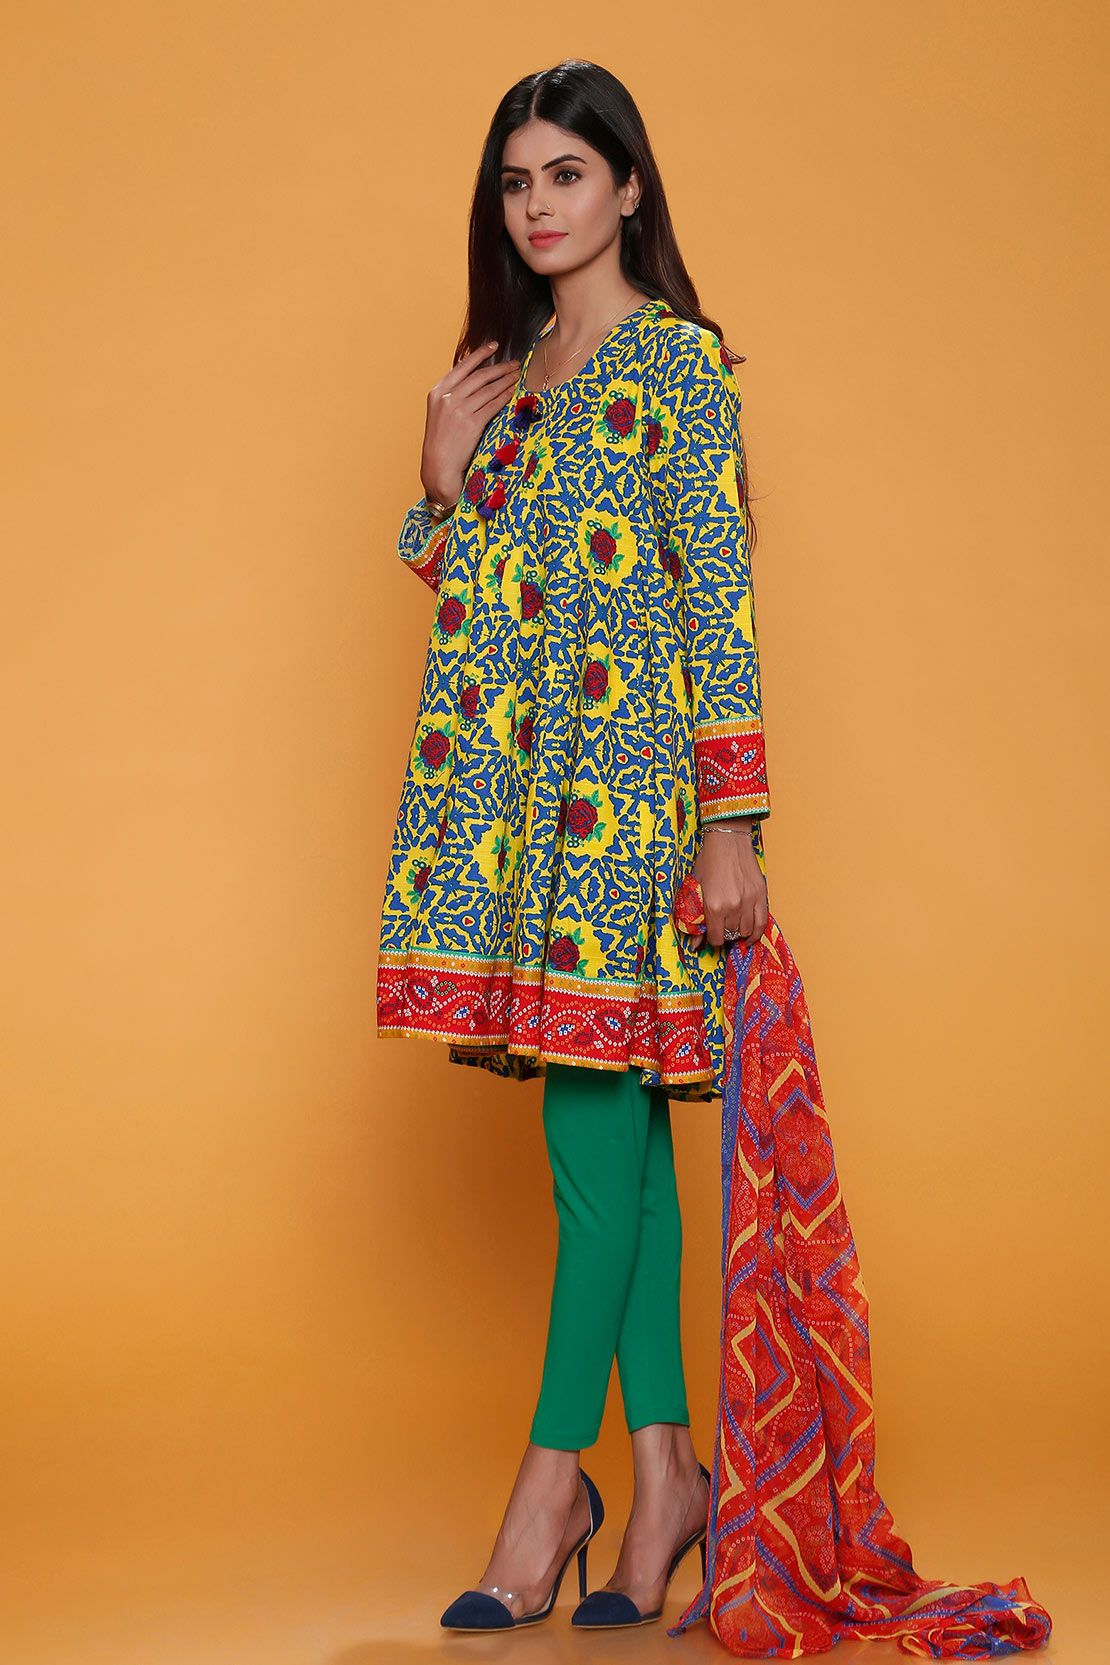 66d5e503b1b Yellow Casual wear Pakistani Dresses by Rang Ja winter Collection   wintercollection  blackfriday  readytowear  pretwear  unstitched  online   linen ...